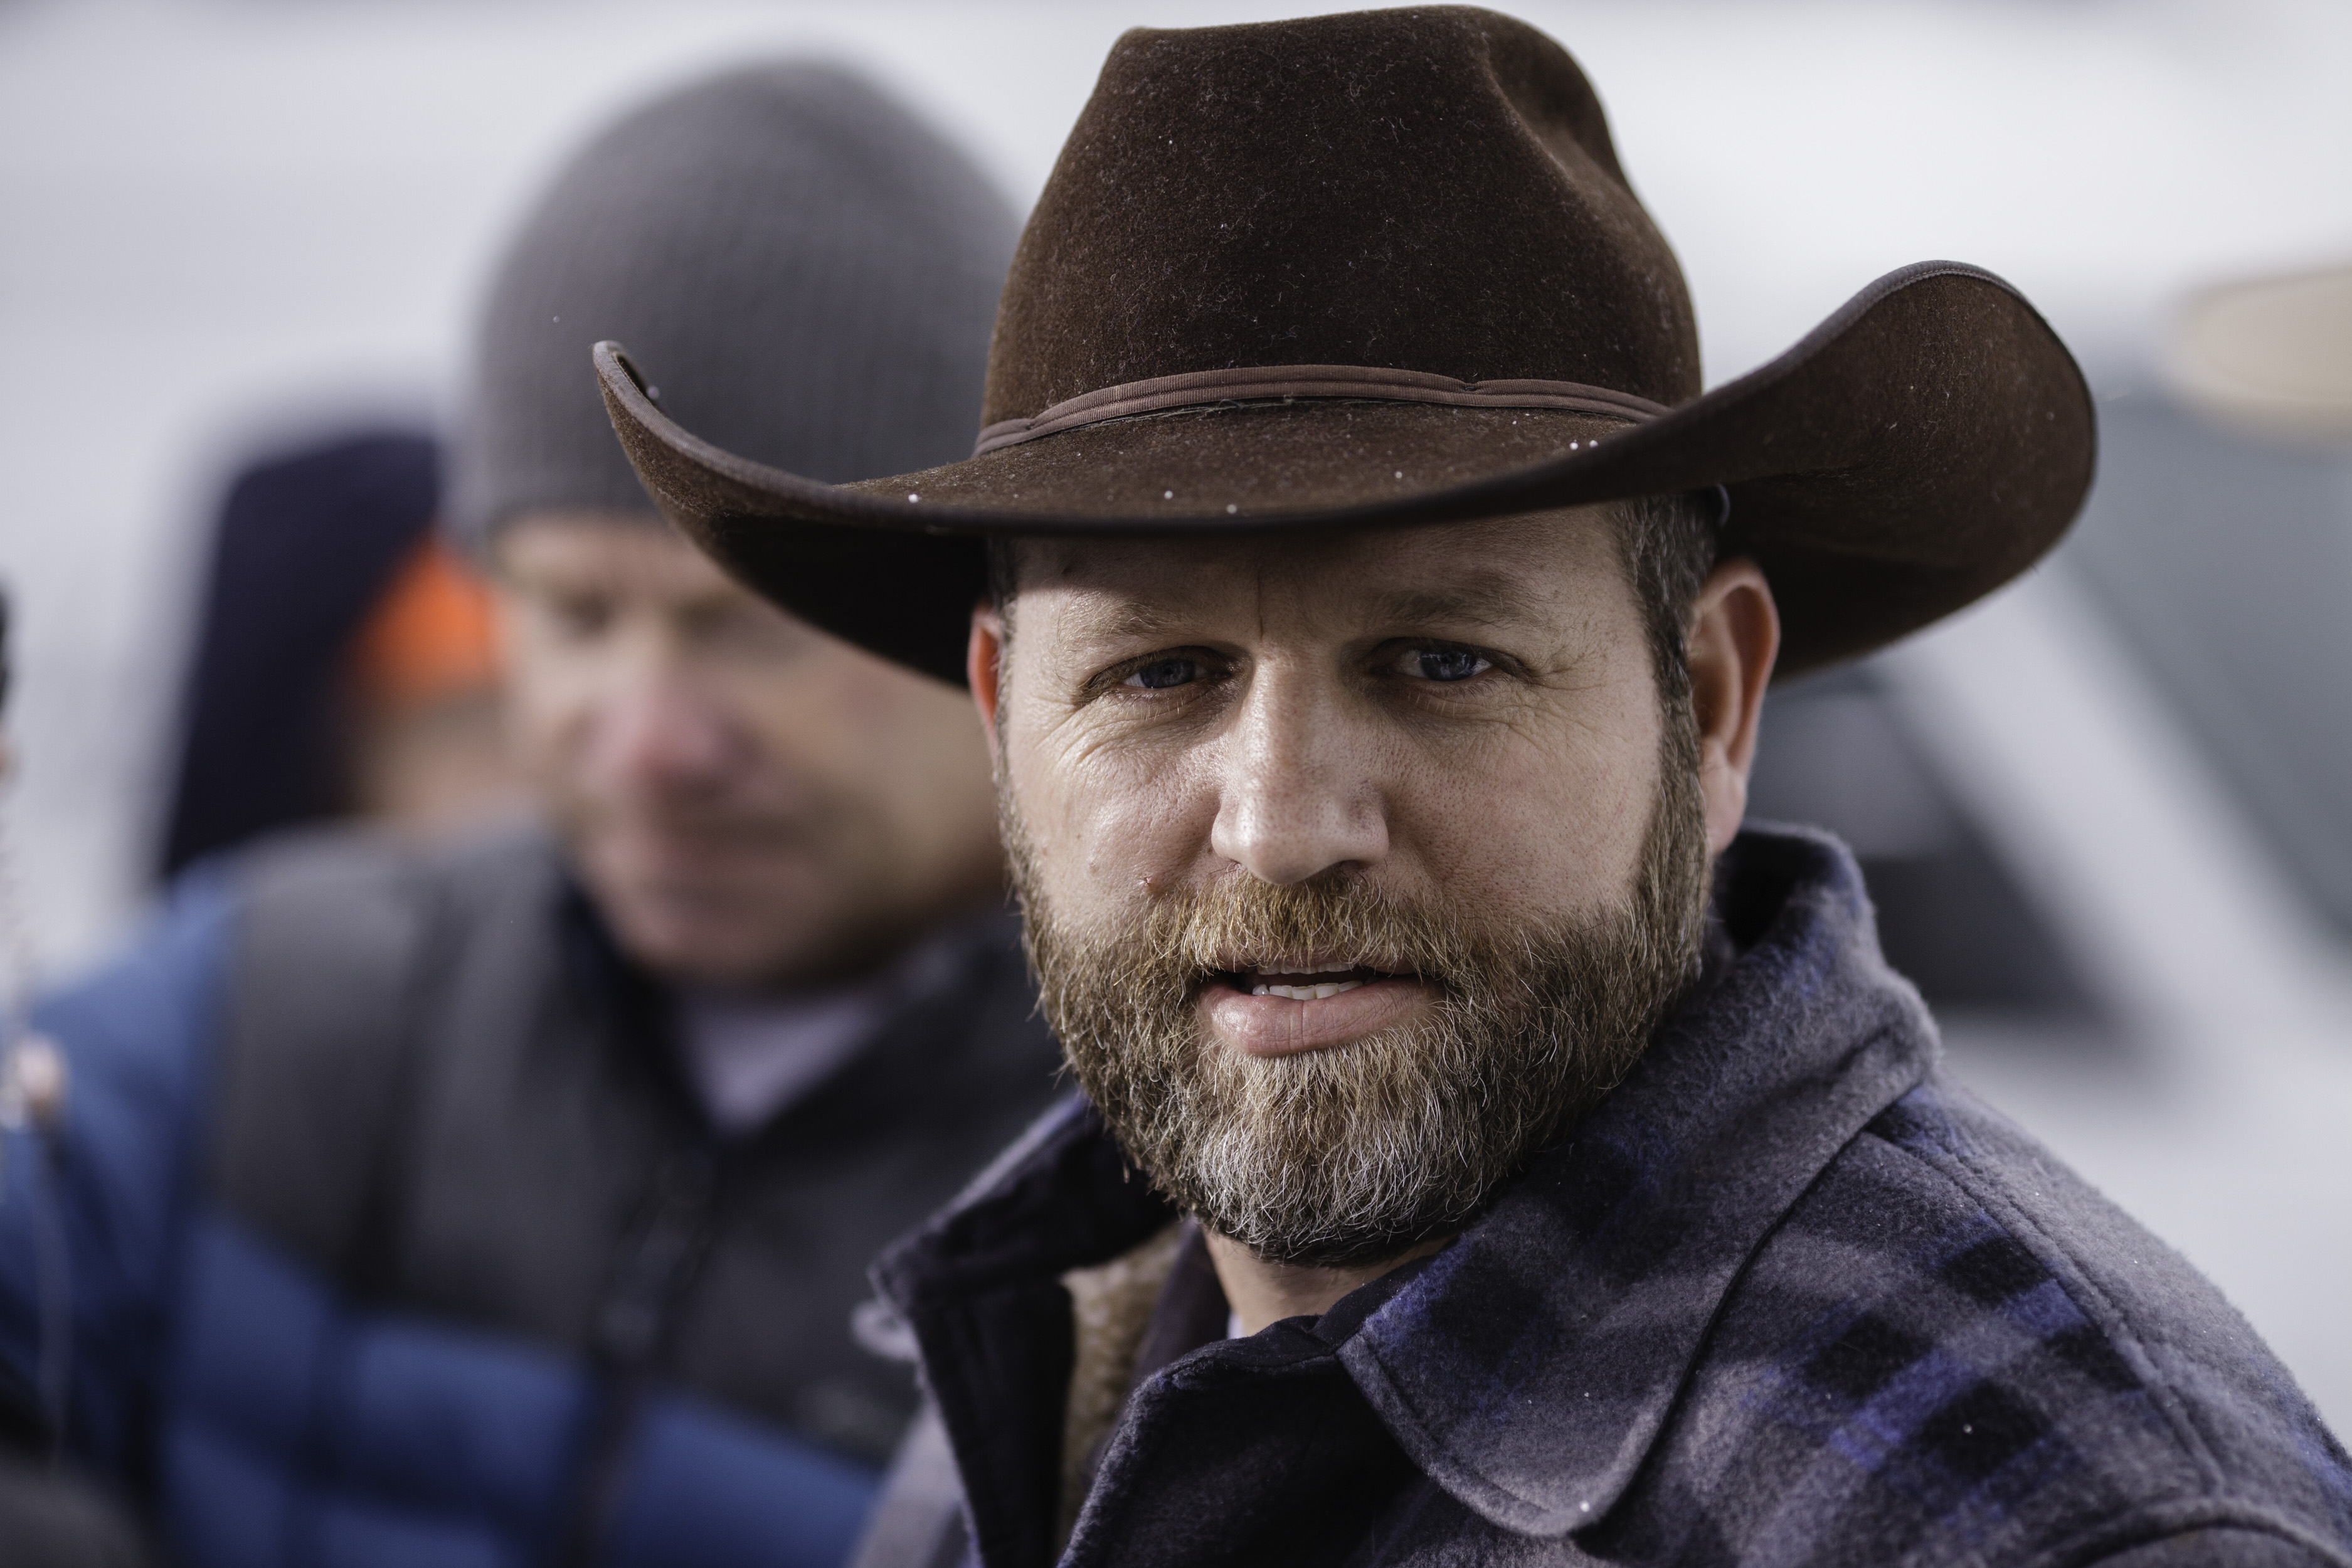 Ammon Bundy, leader of an armed anti-government militia, speaks at a news conference at the entrance to the Malheur National Wildlife Refuge Headquarters near Burns, Oregon Jan. 5, 2016.